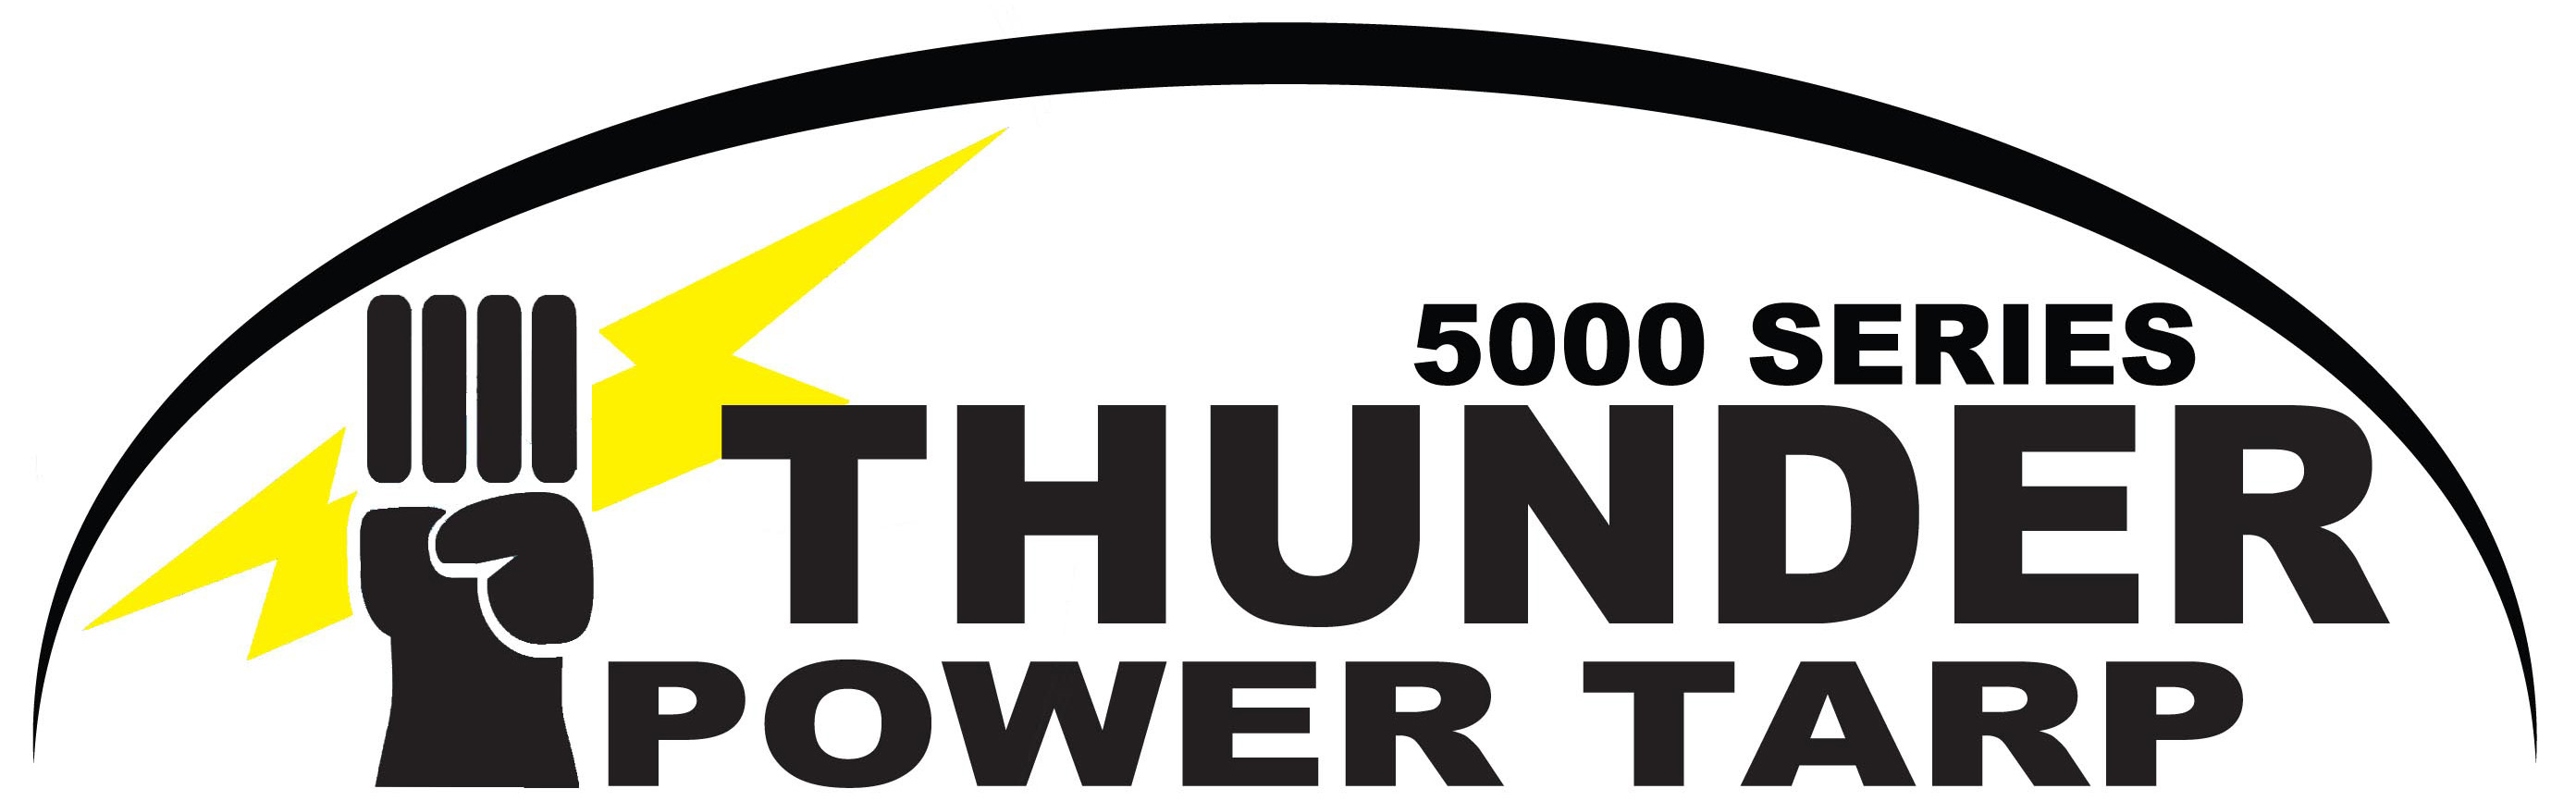 Thunder Power Tarp 5000 Series Logo